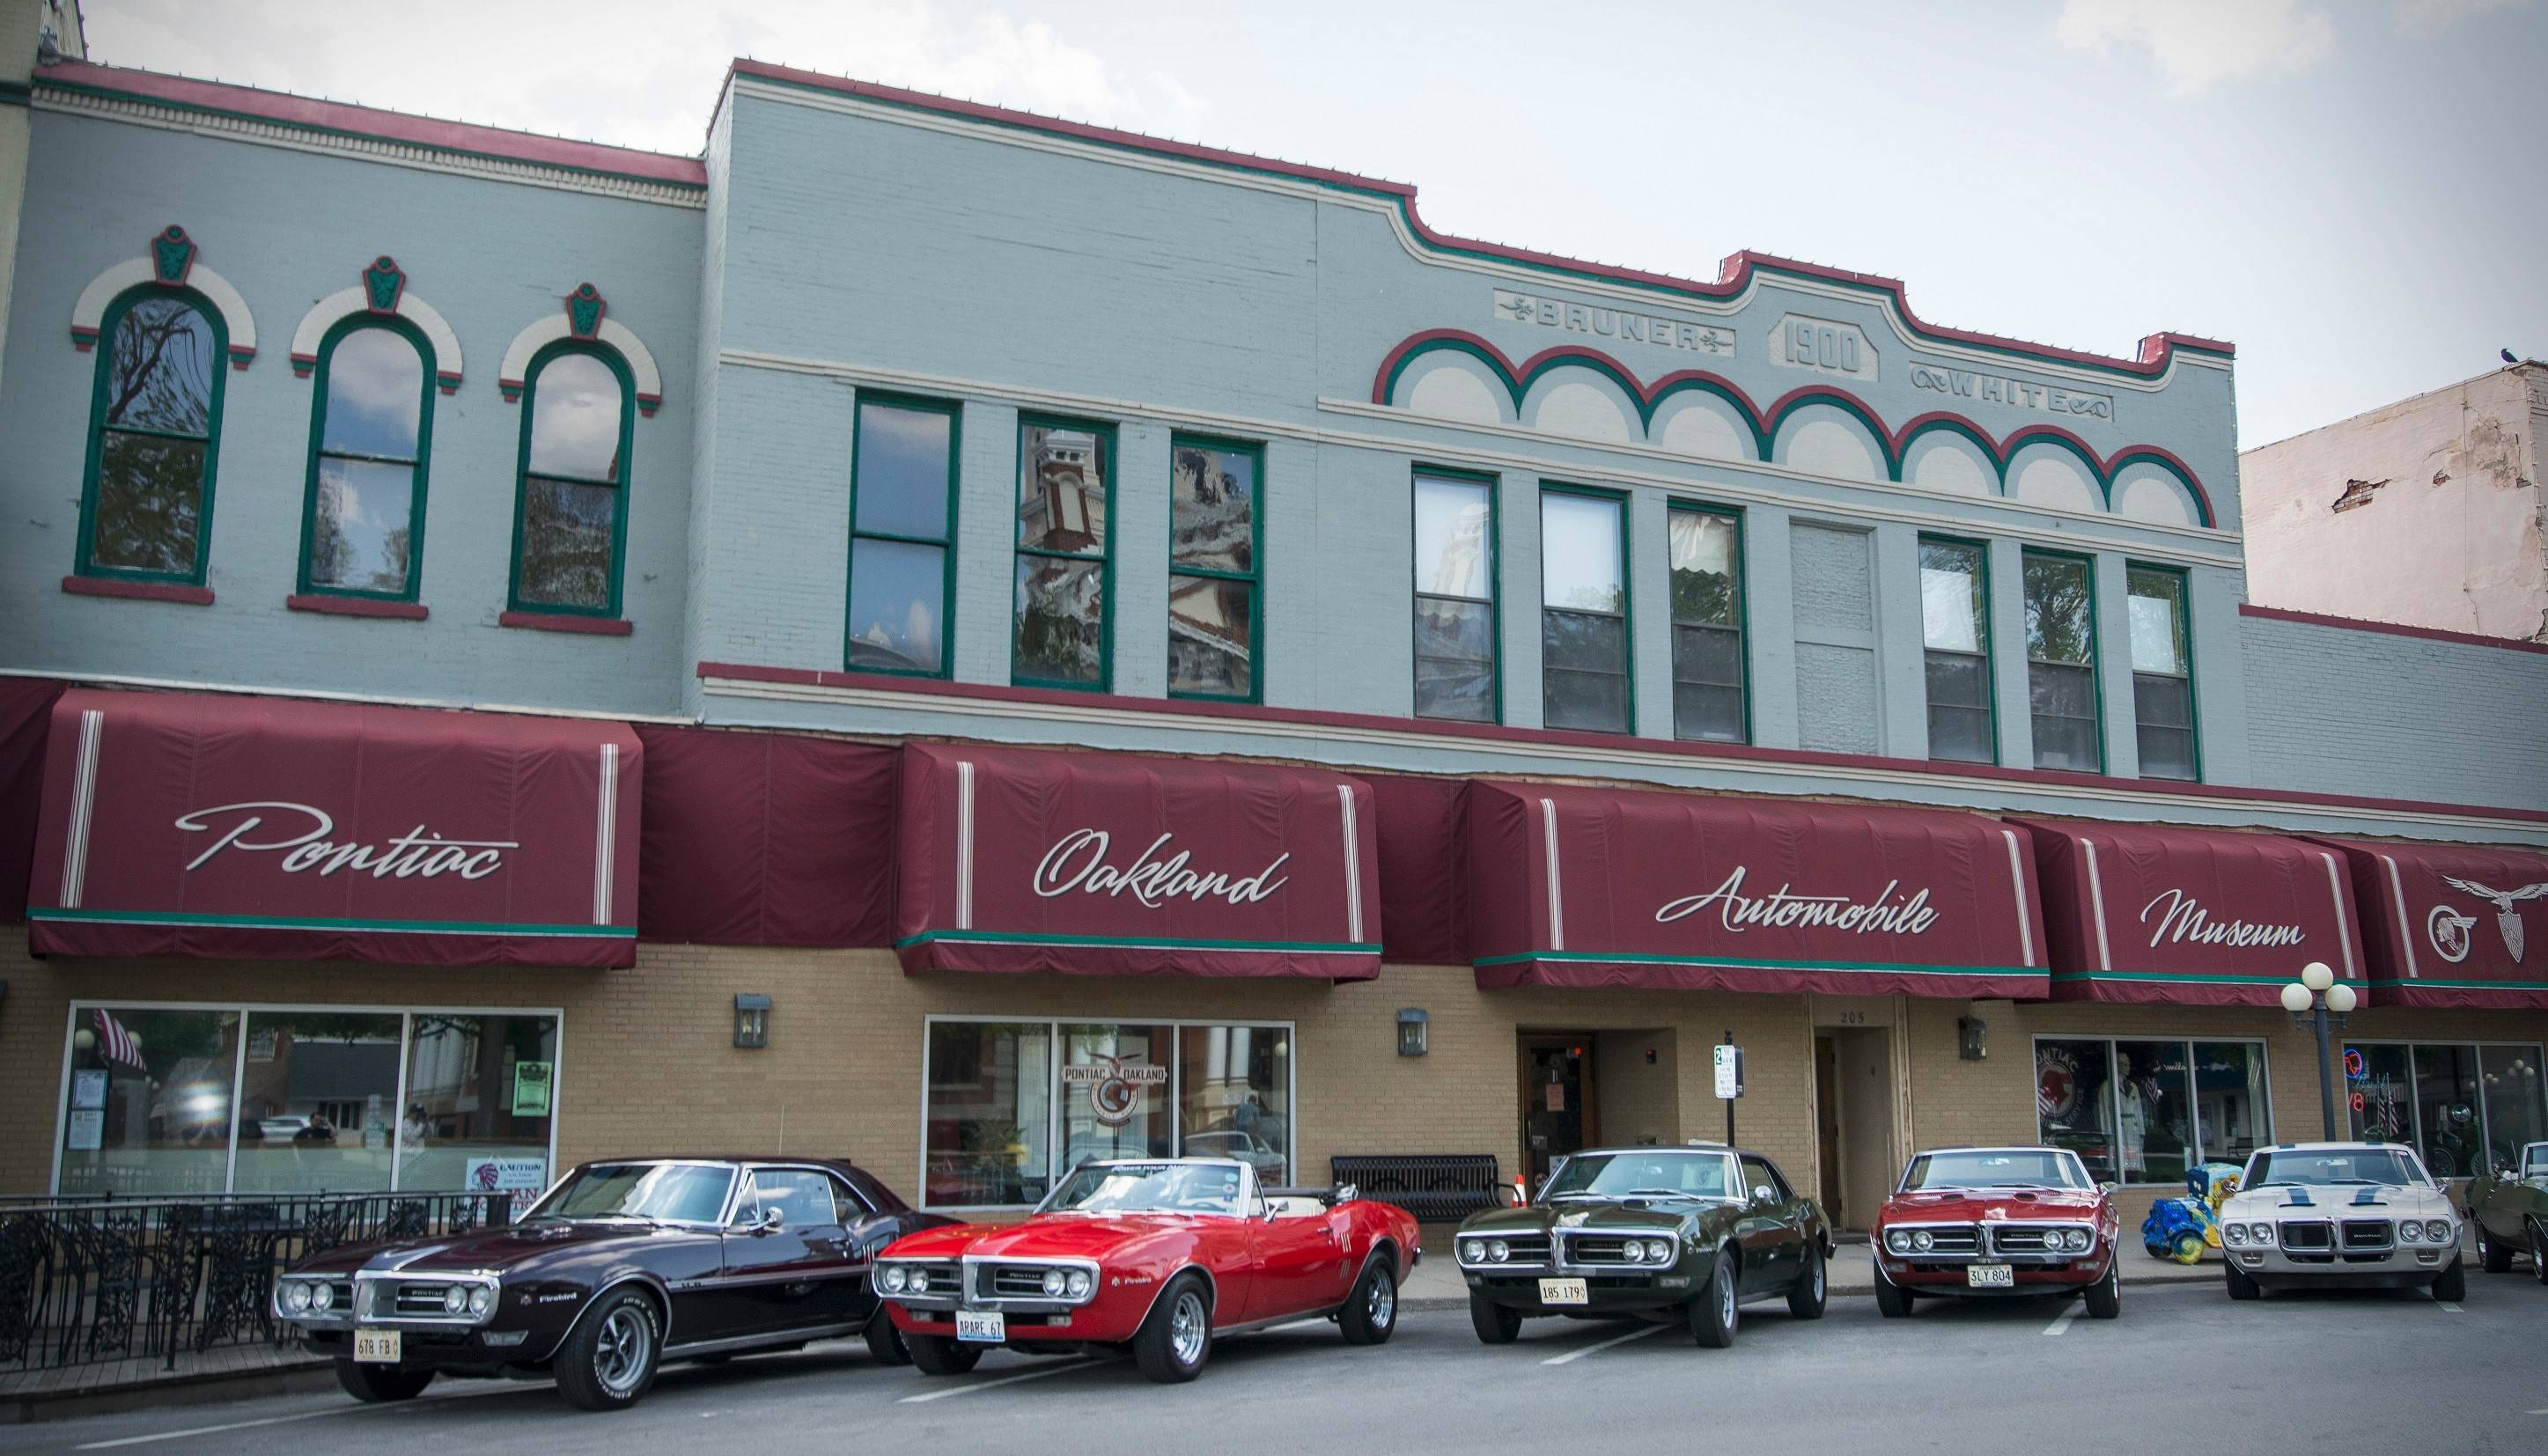 Members of the Chicago-area Midwest Firebird Club cruised down to Pontiac this summer to visit the Pontiac-Oakland Automobile Museum.